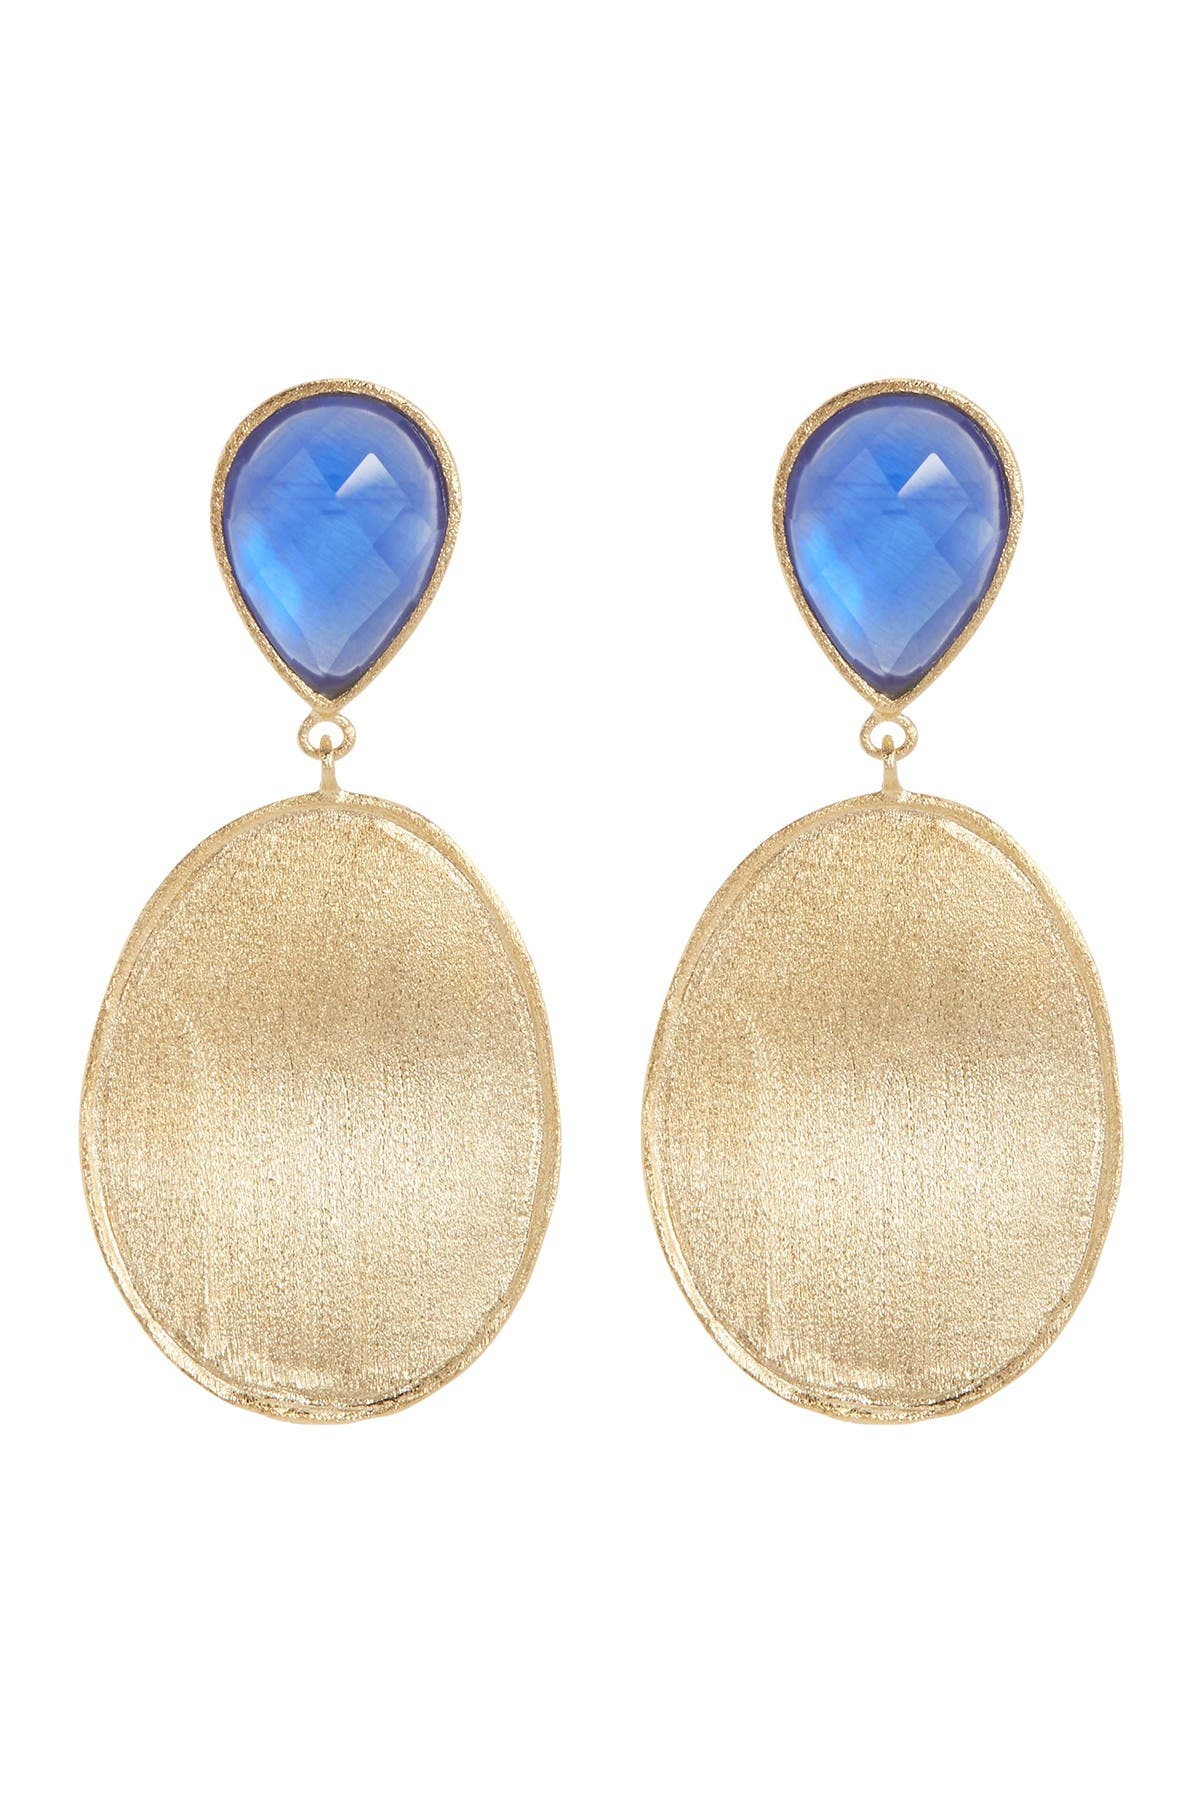 Image of Rivka Friedman 18K Gold Clad Faceted Poppy Blue Crystal, Mother of Pearl Doublet & Satin Wavy Oval Drop Earrings